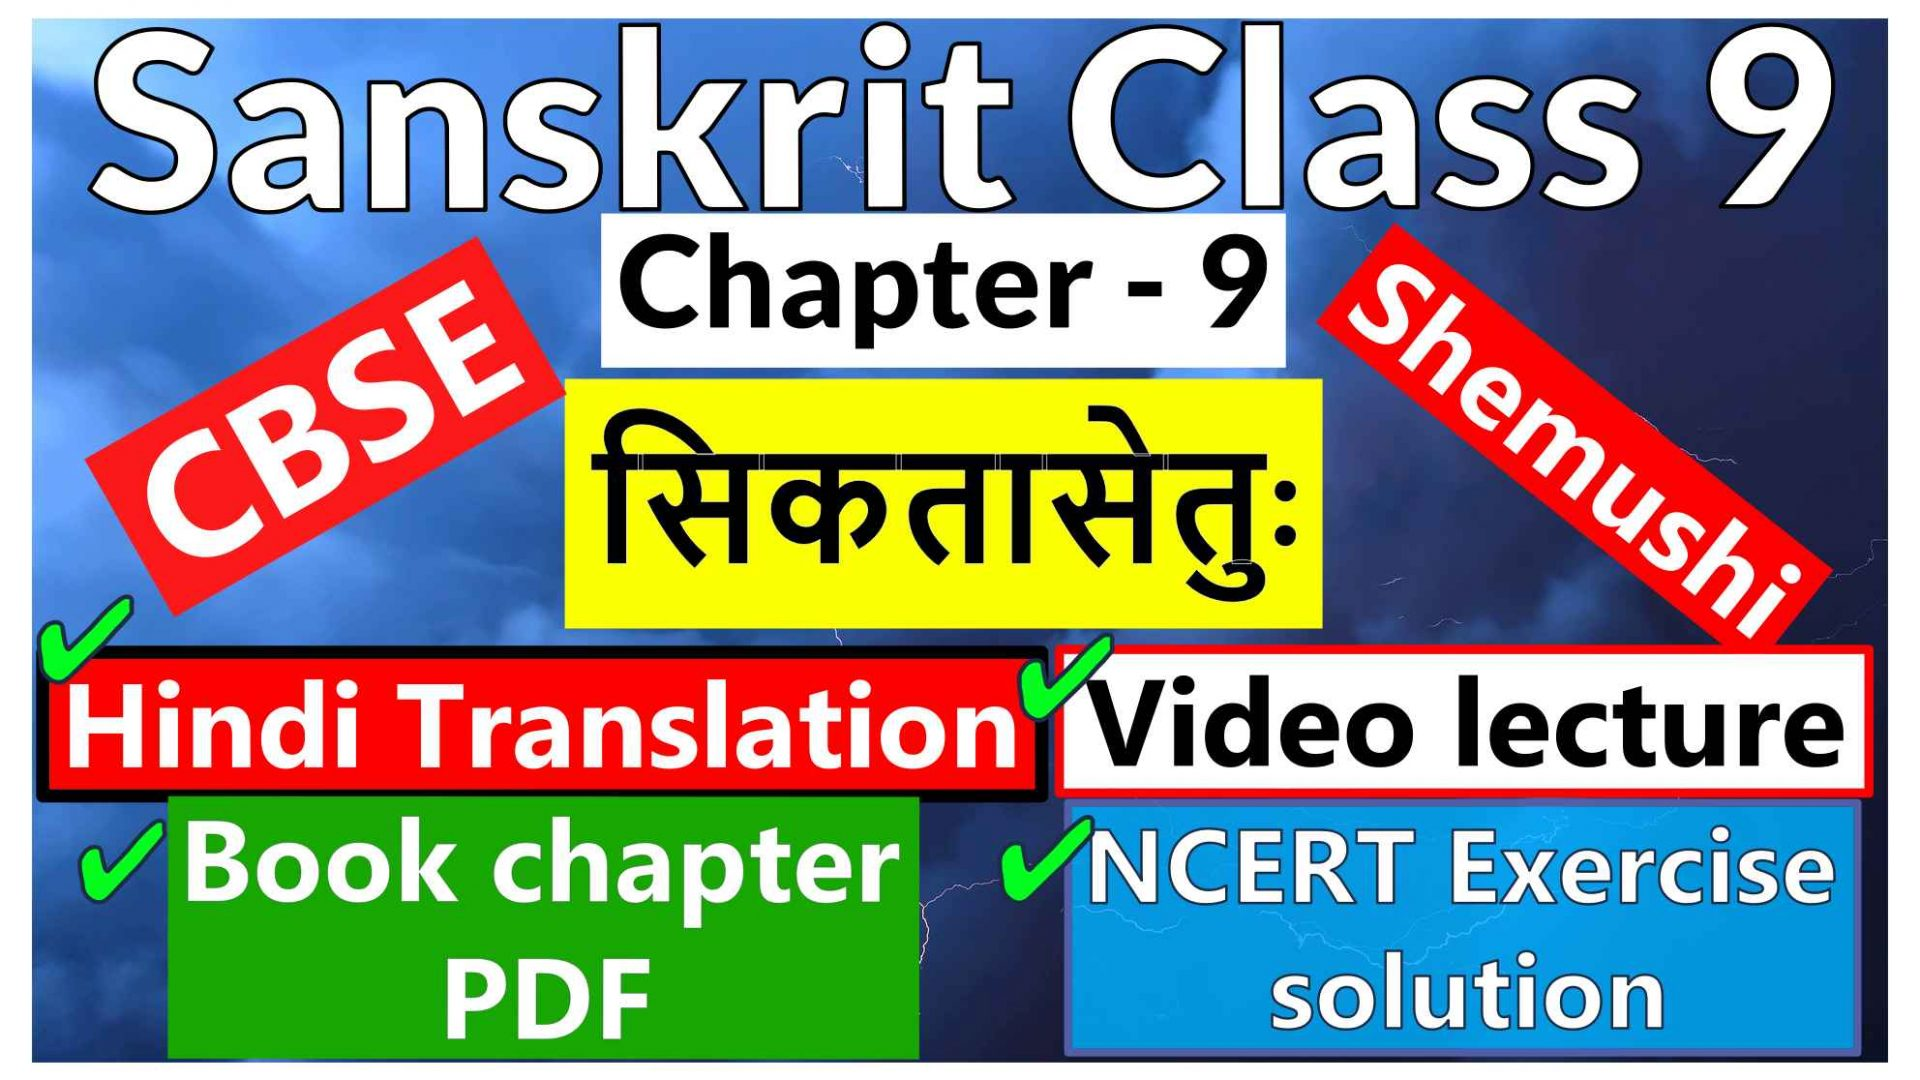 Sanskrit Class 9-Chapter 9 - सिकतासेतुः - Hindi Translation, Video lecture, NCERT Exercise solution (Question-Answer), Book chapter PDF.jpg